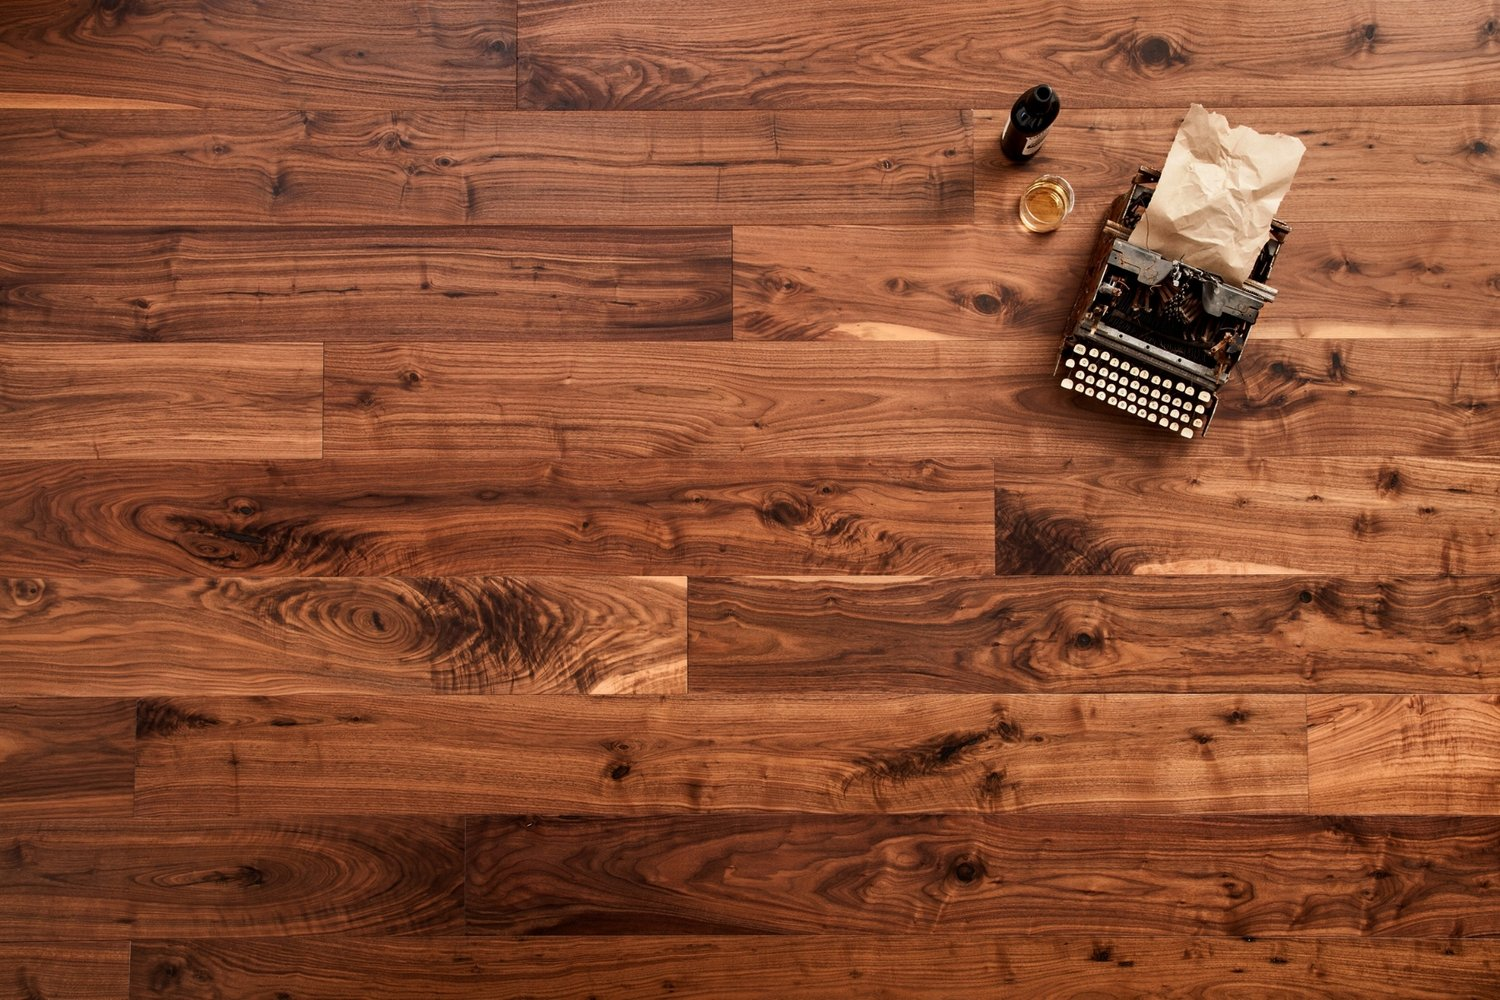 American Black Walnut Flooring NYC - M A D E R A Simply Wood Floors Designed By Nature